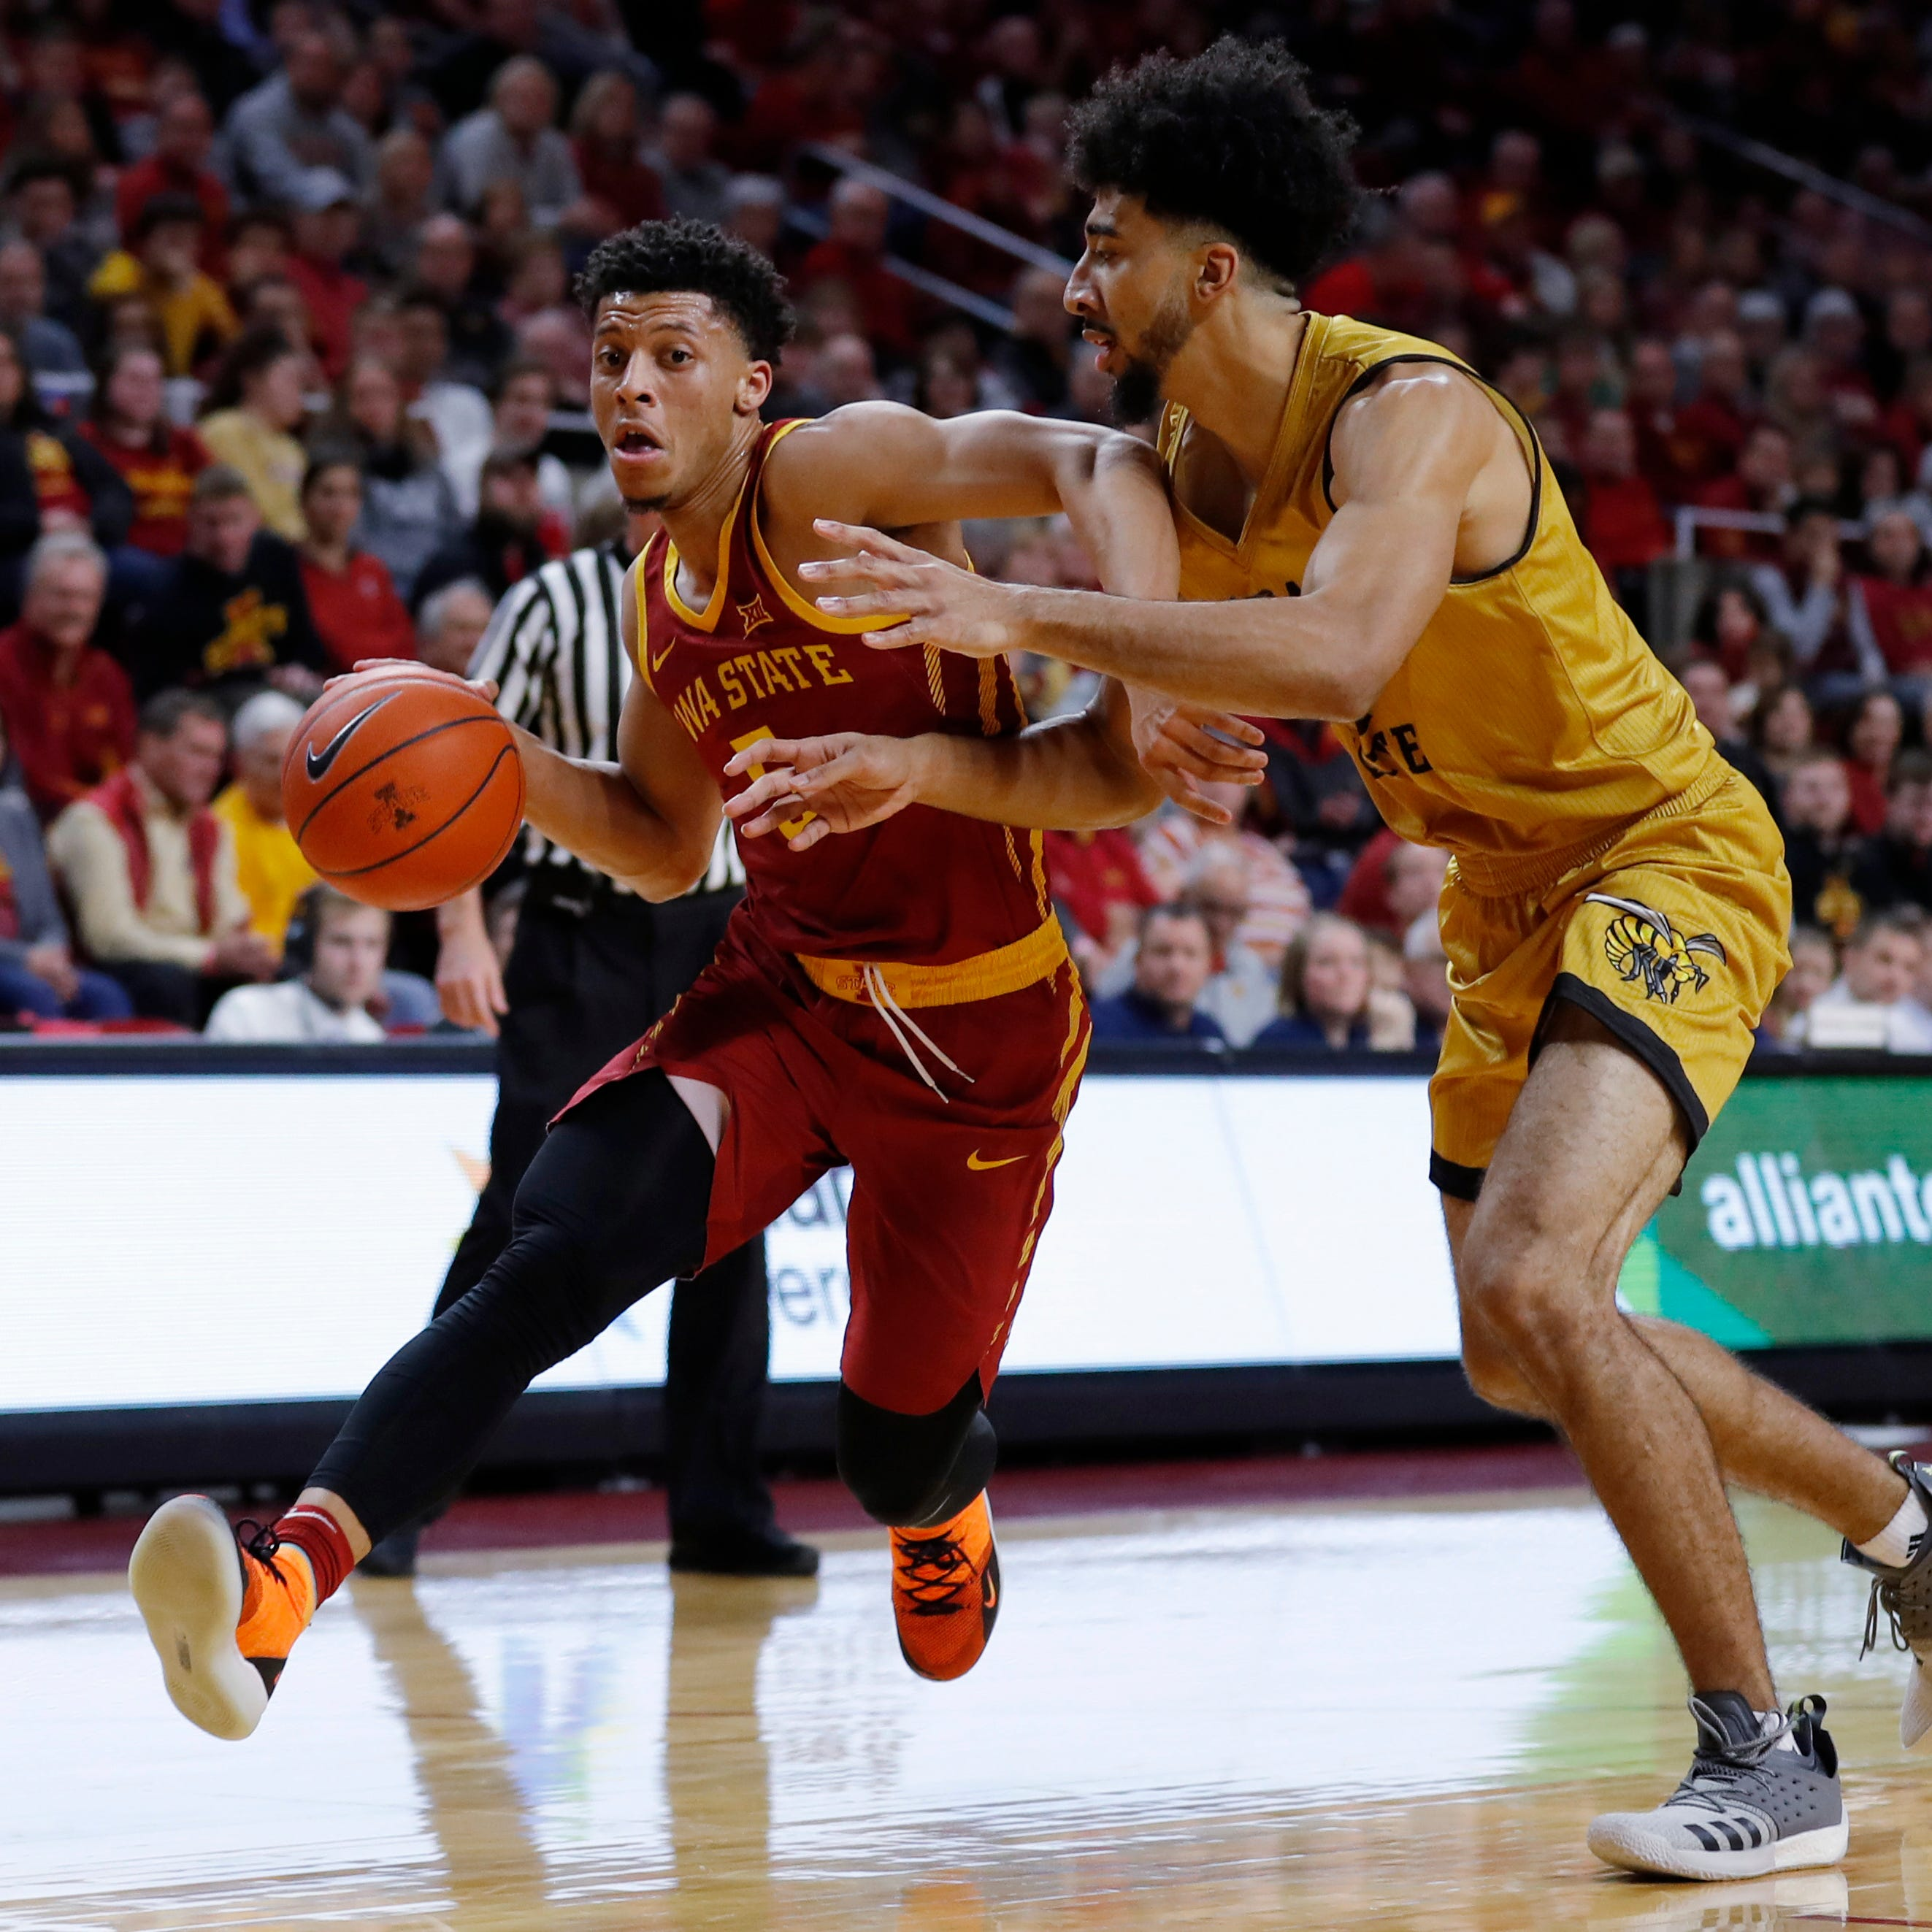 Peterson: Prohm's charge is to successfully fit Lard, Talley, Wigginton and Young into the puzzle